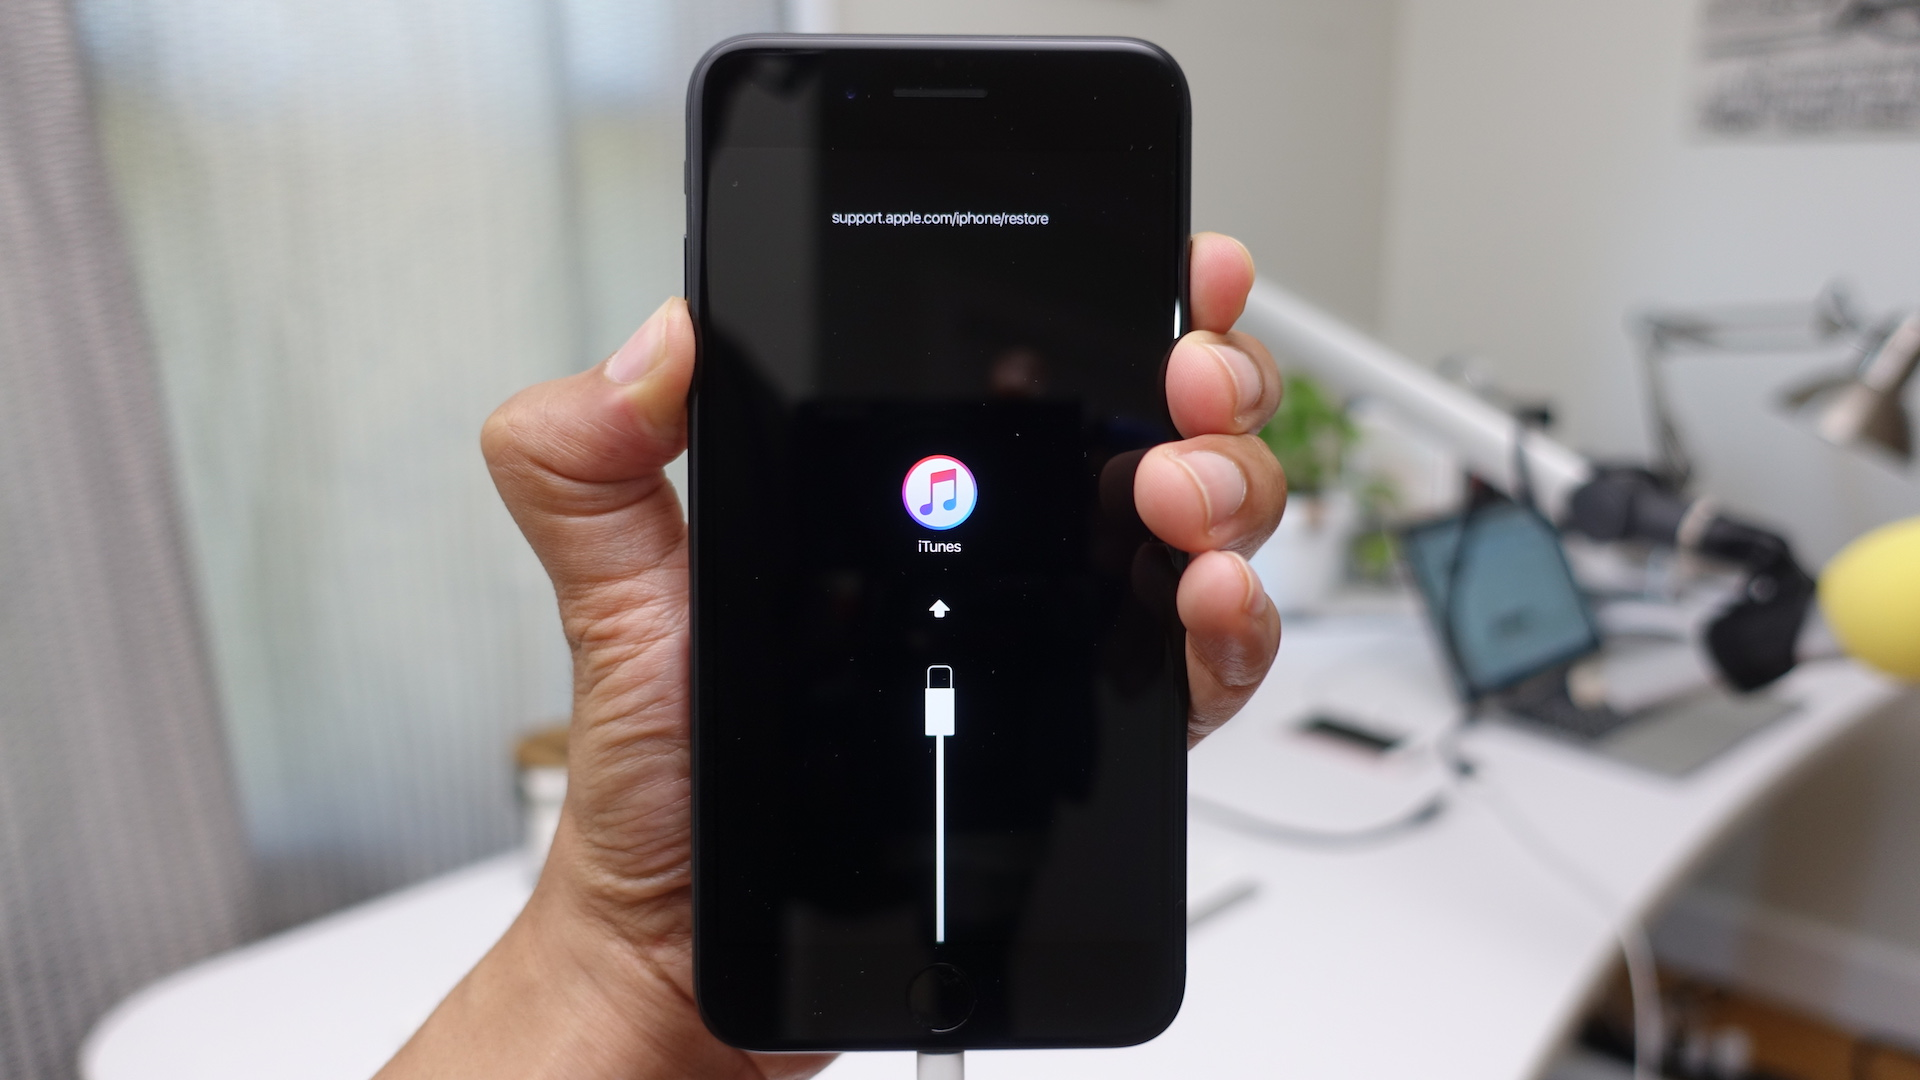 How to reset iphone 7 without using itunes